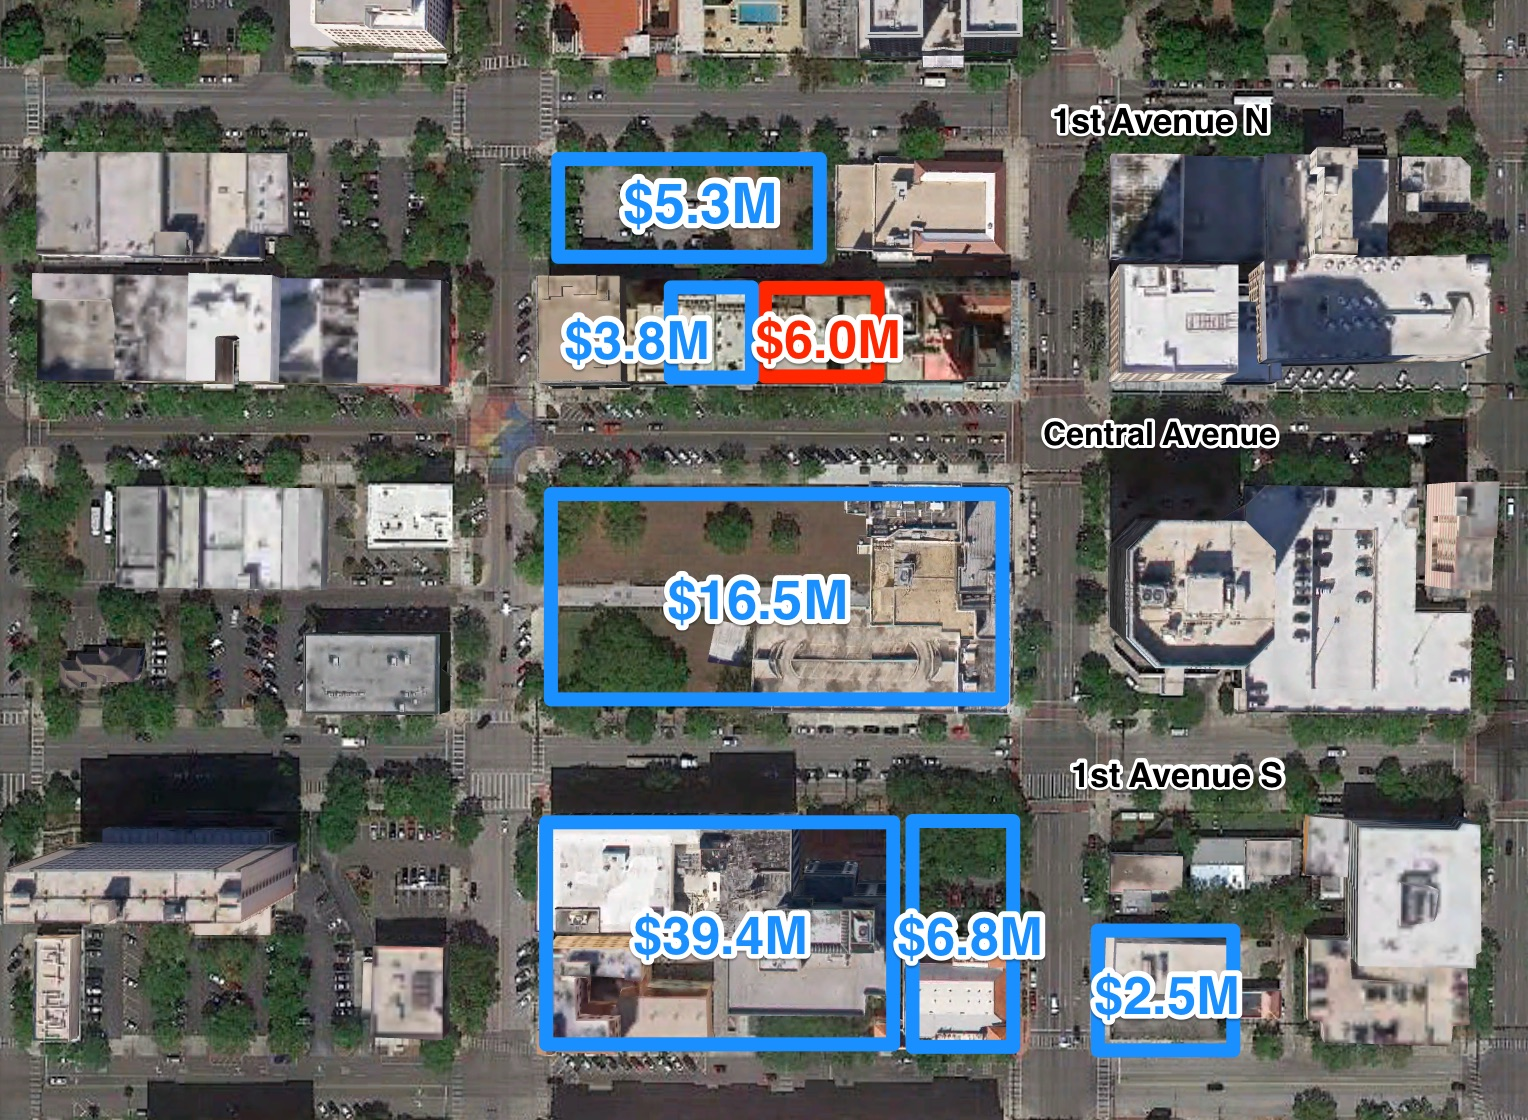 The 400 block of Central Avenue and the surrounding area has seen increased investment activity in recent years. The McCrory building at 433 Central is outlined in red with nearby sales that have occurred within the last three years.